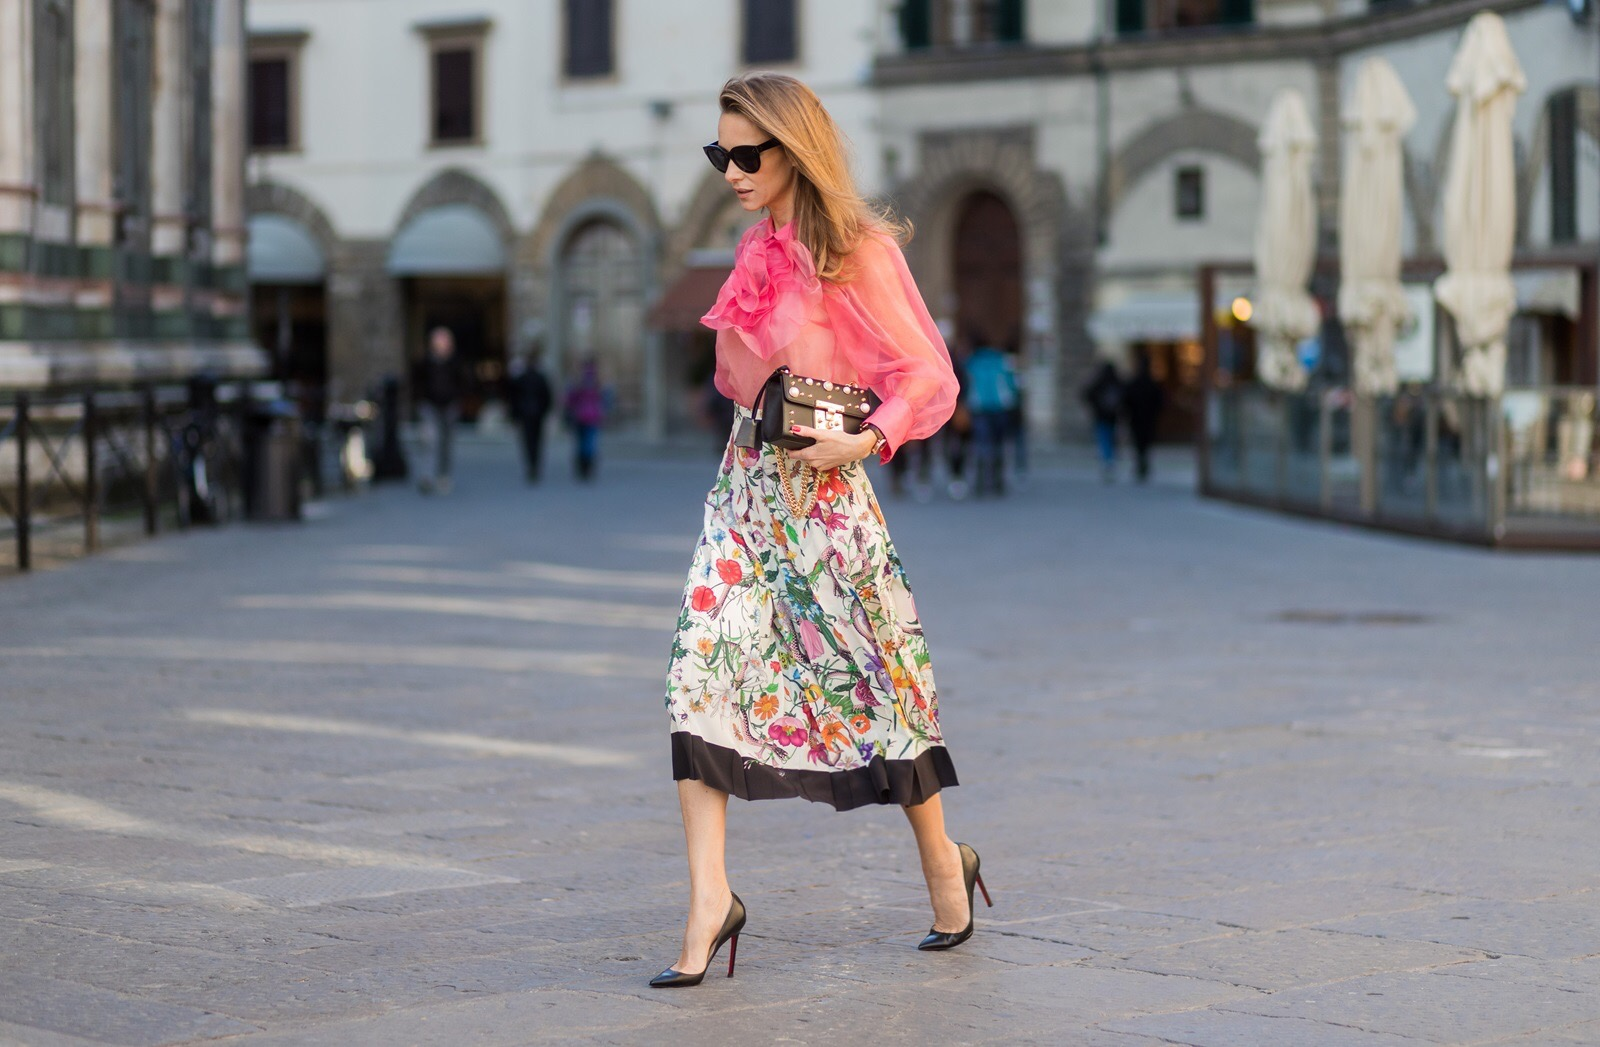 a0ab417fc5 ... wearing · FLORENCE, ITALY - JANUARY 11: German fashion blogger and  model Alexandra Lapp is wearing ...